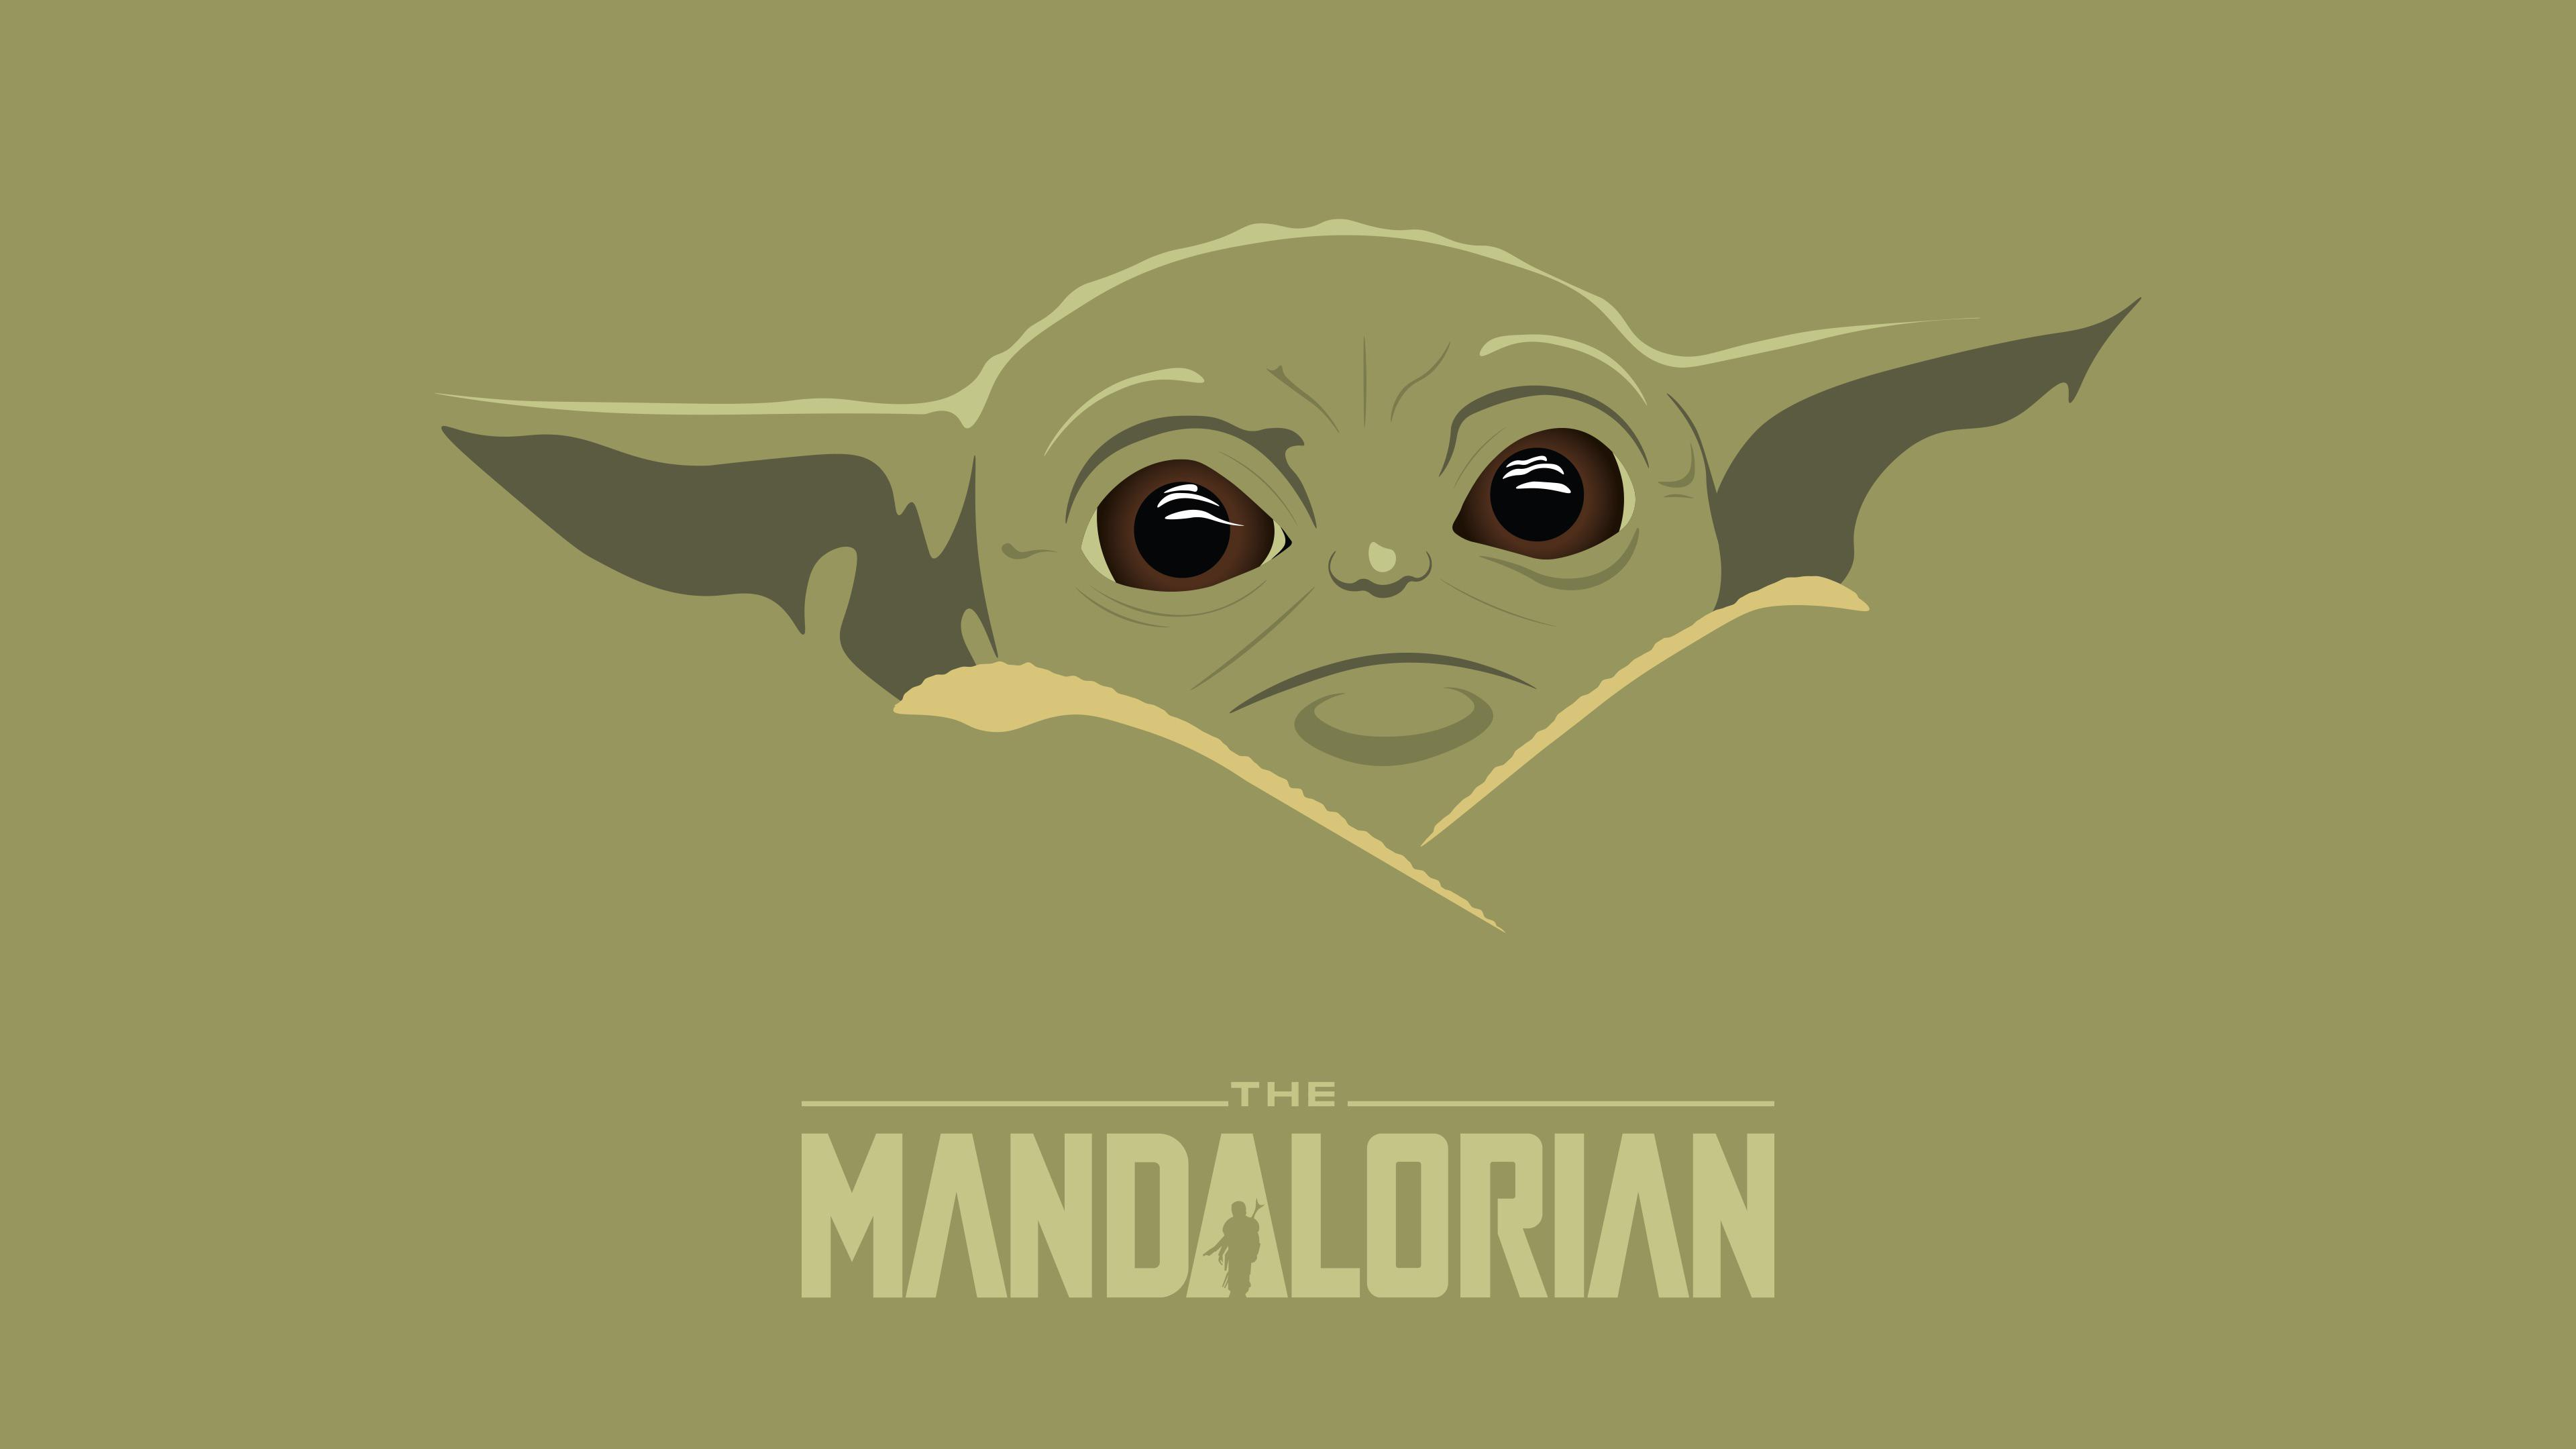 I made a minimalist wallpapers of baby yoda : TheMandalorianTV